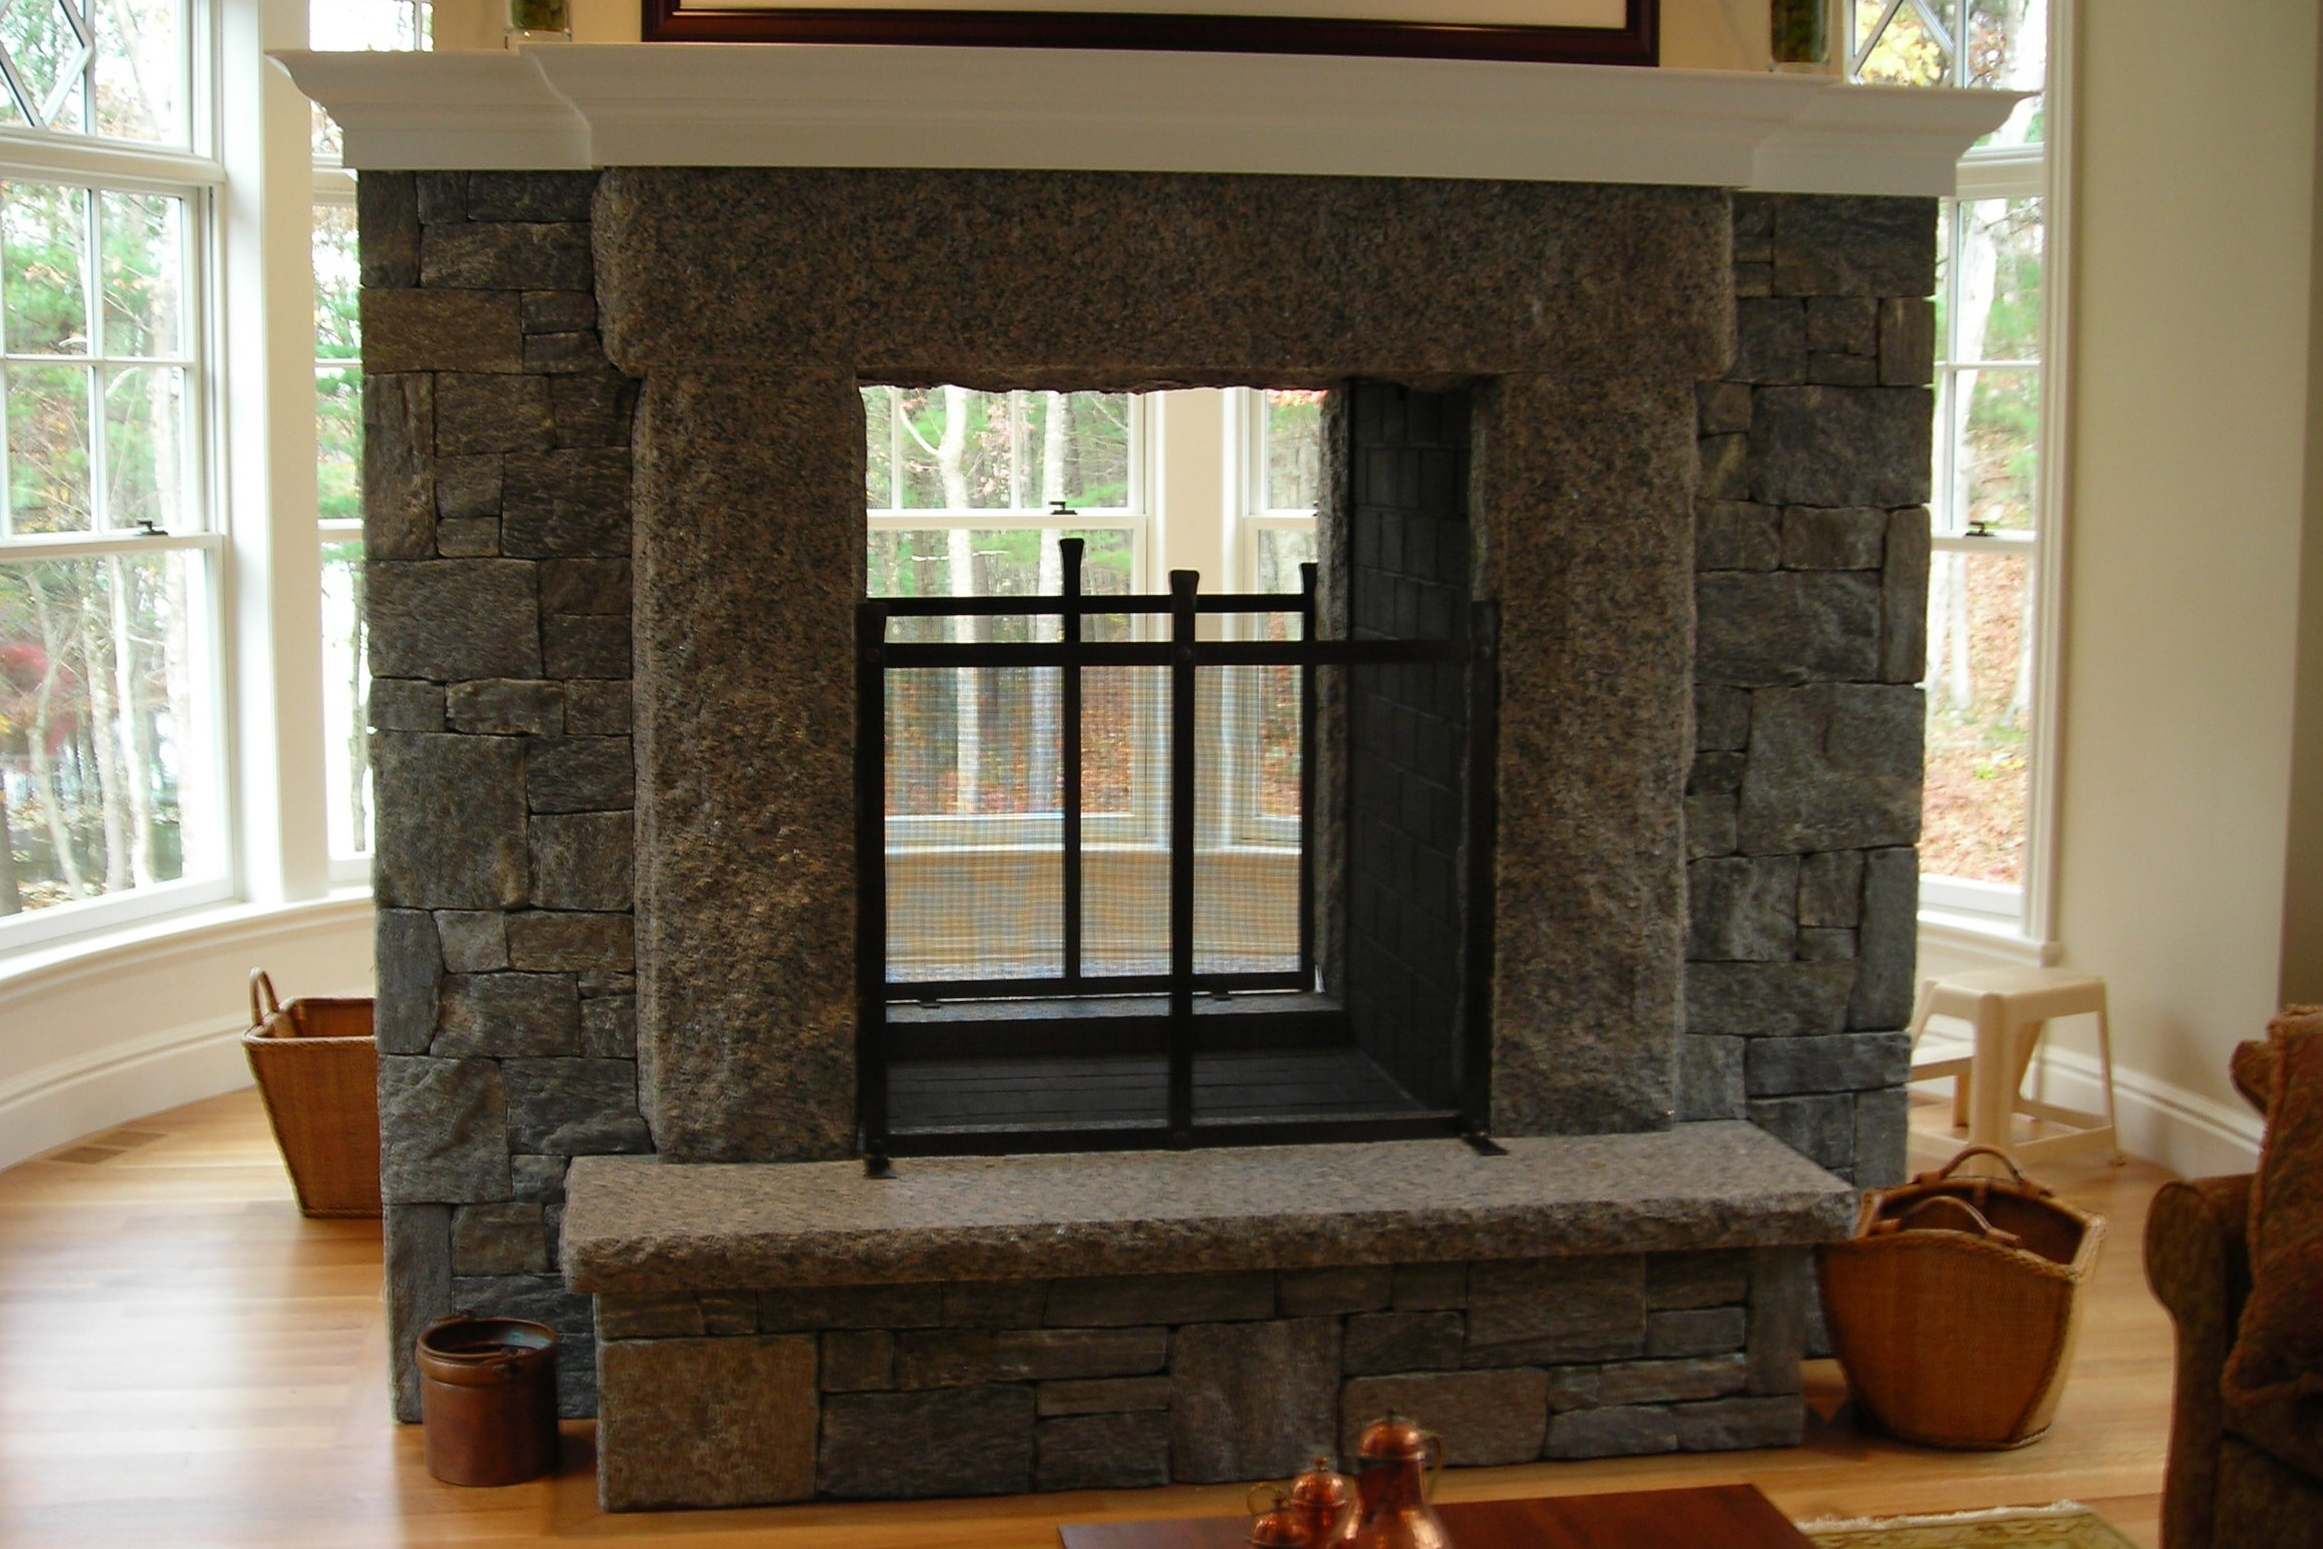 Two-Sided Fireplace with Two Free-Standing Firescreens